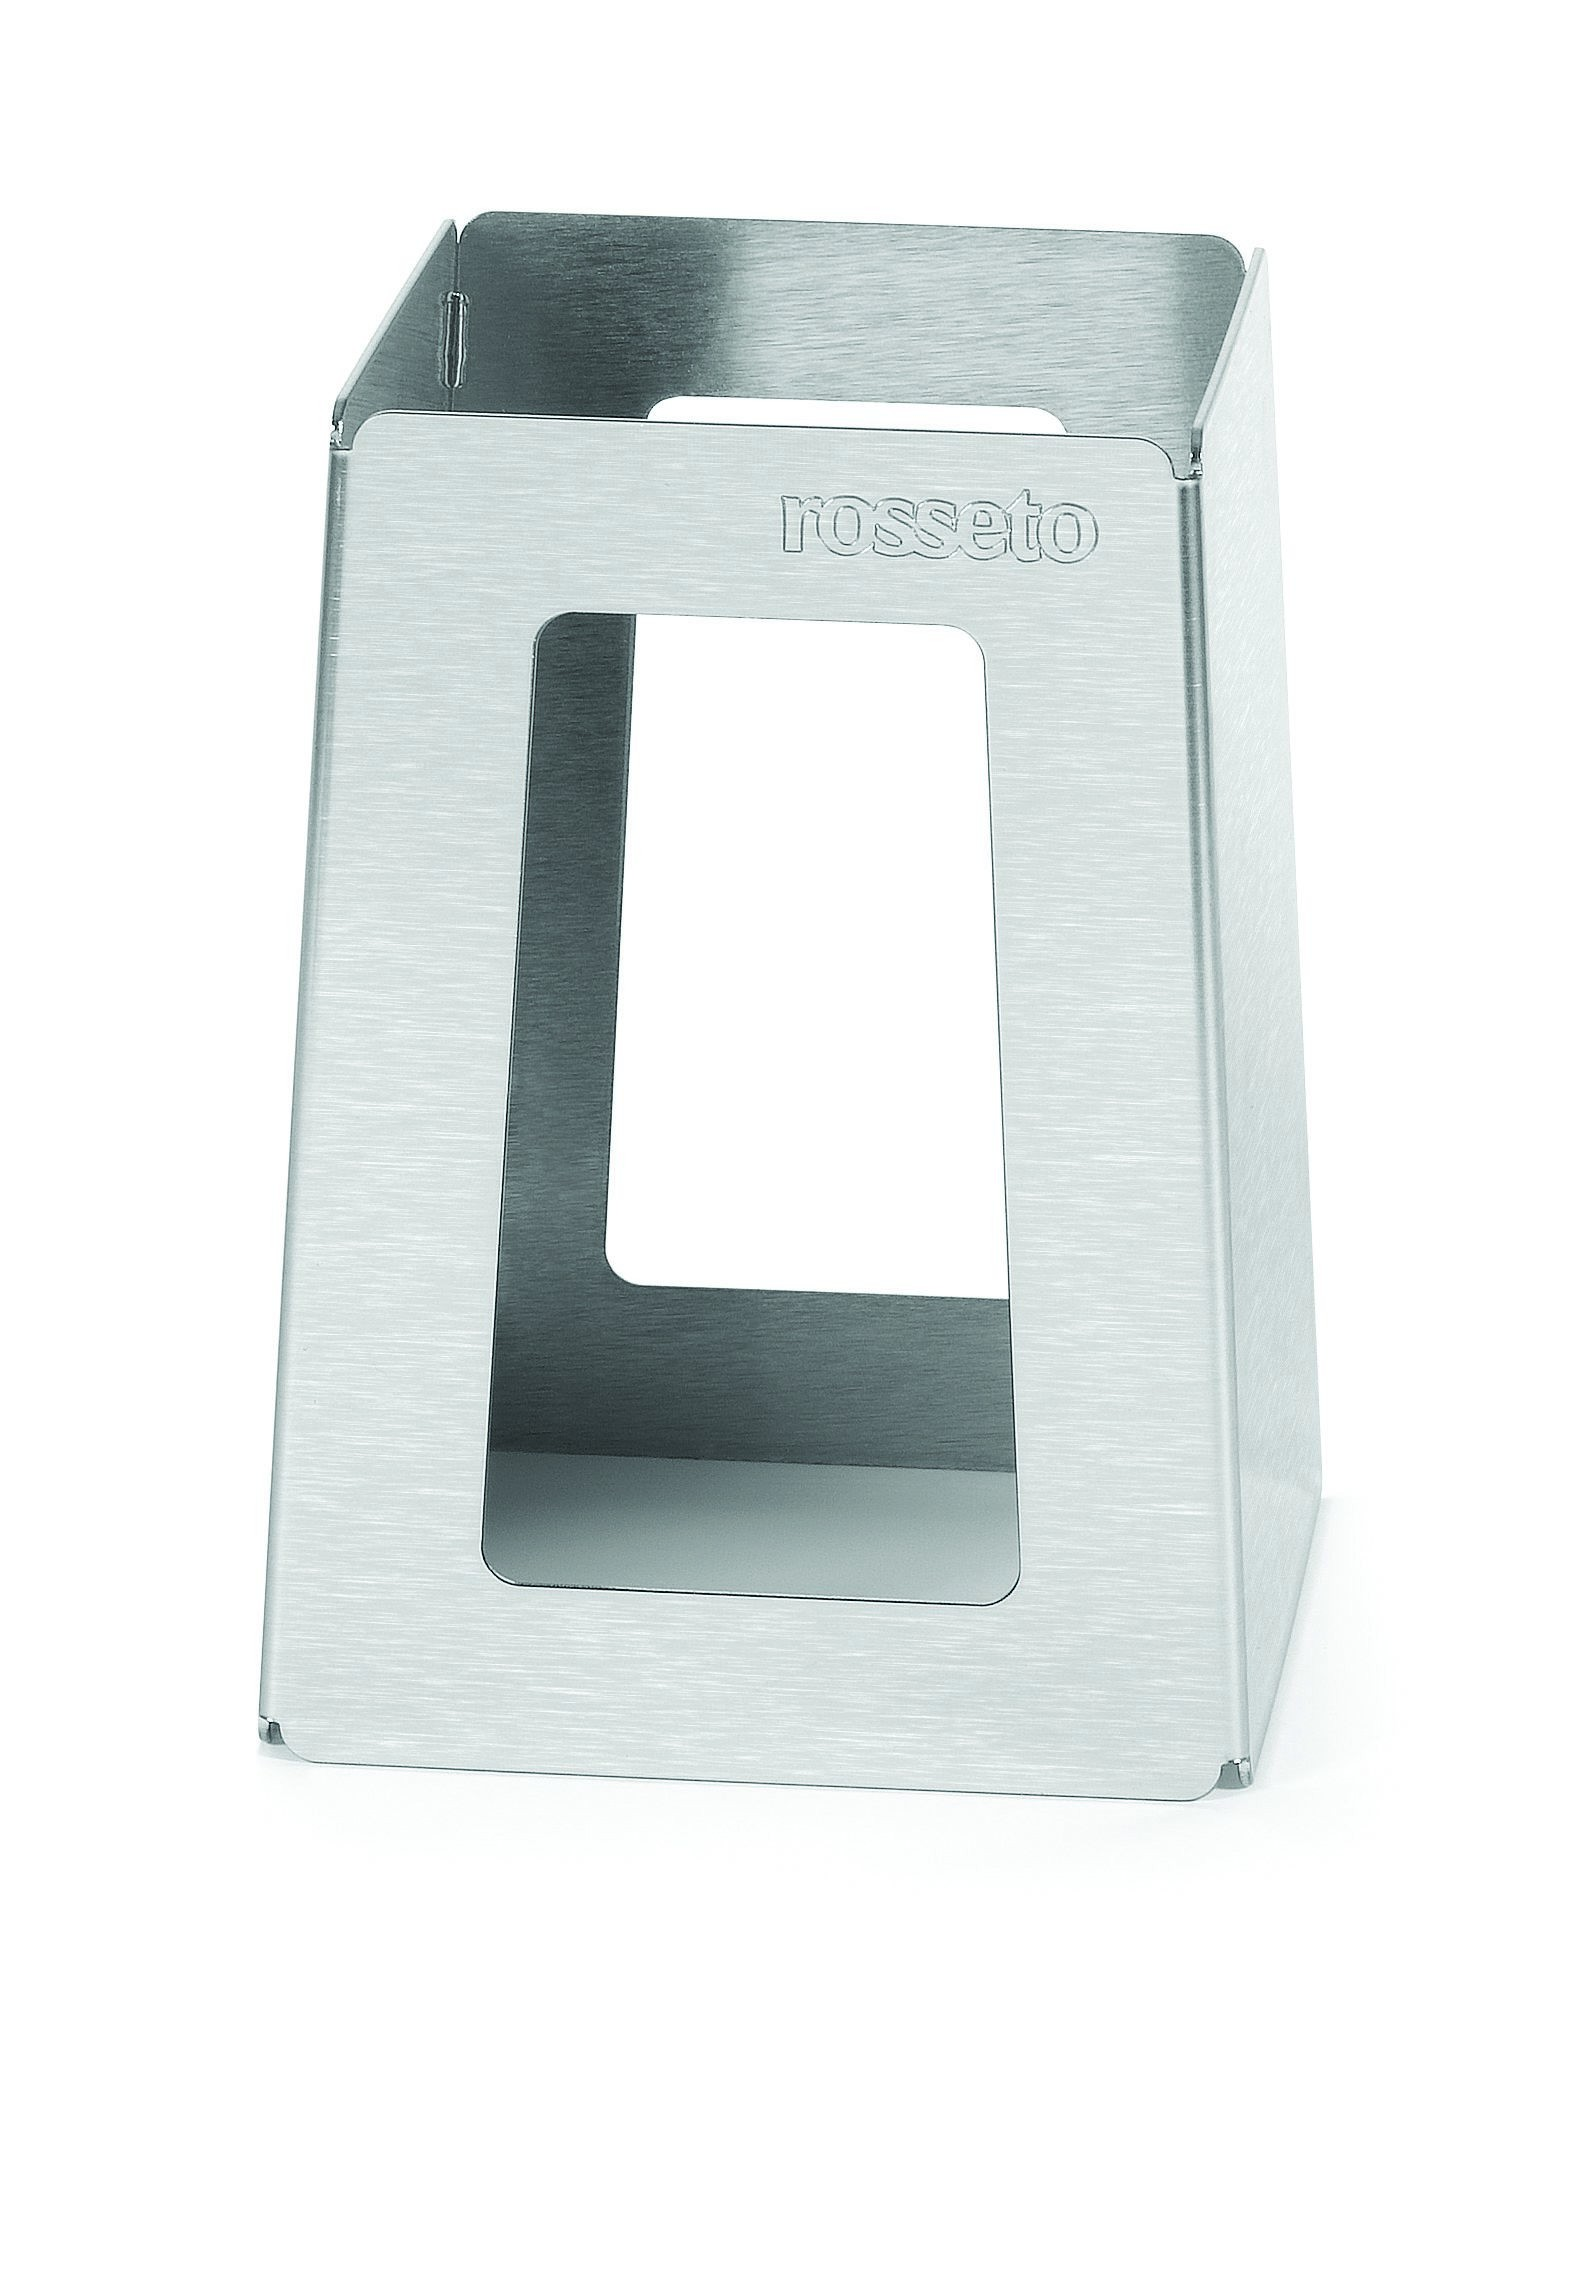 "Rosseto SM150 Stainless Steel Brushed Finish Pyramid Riser 5"" x 5"" x 7""H"